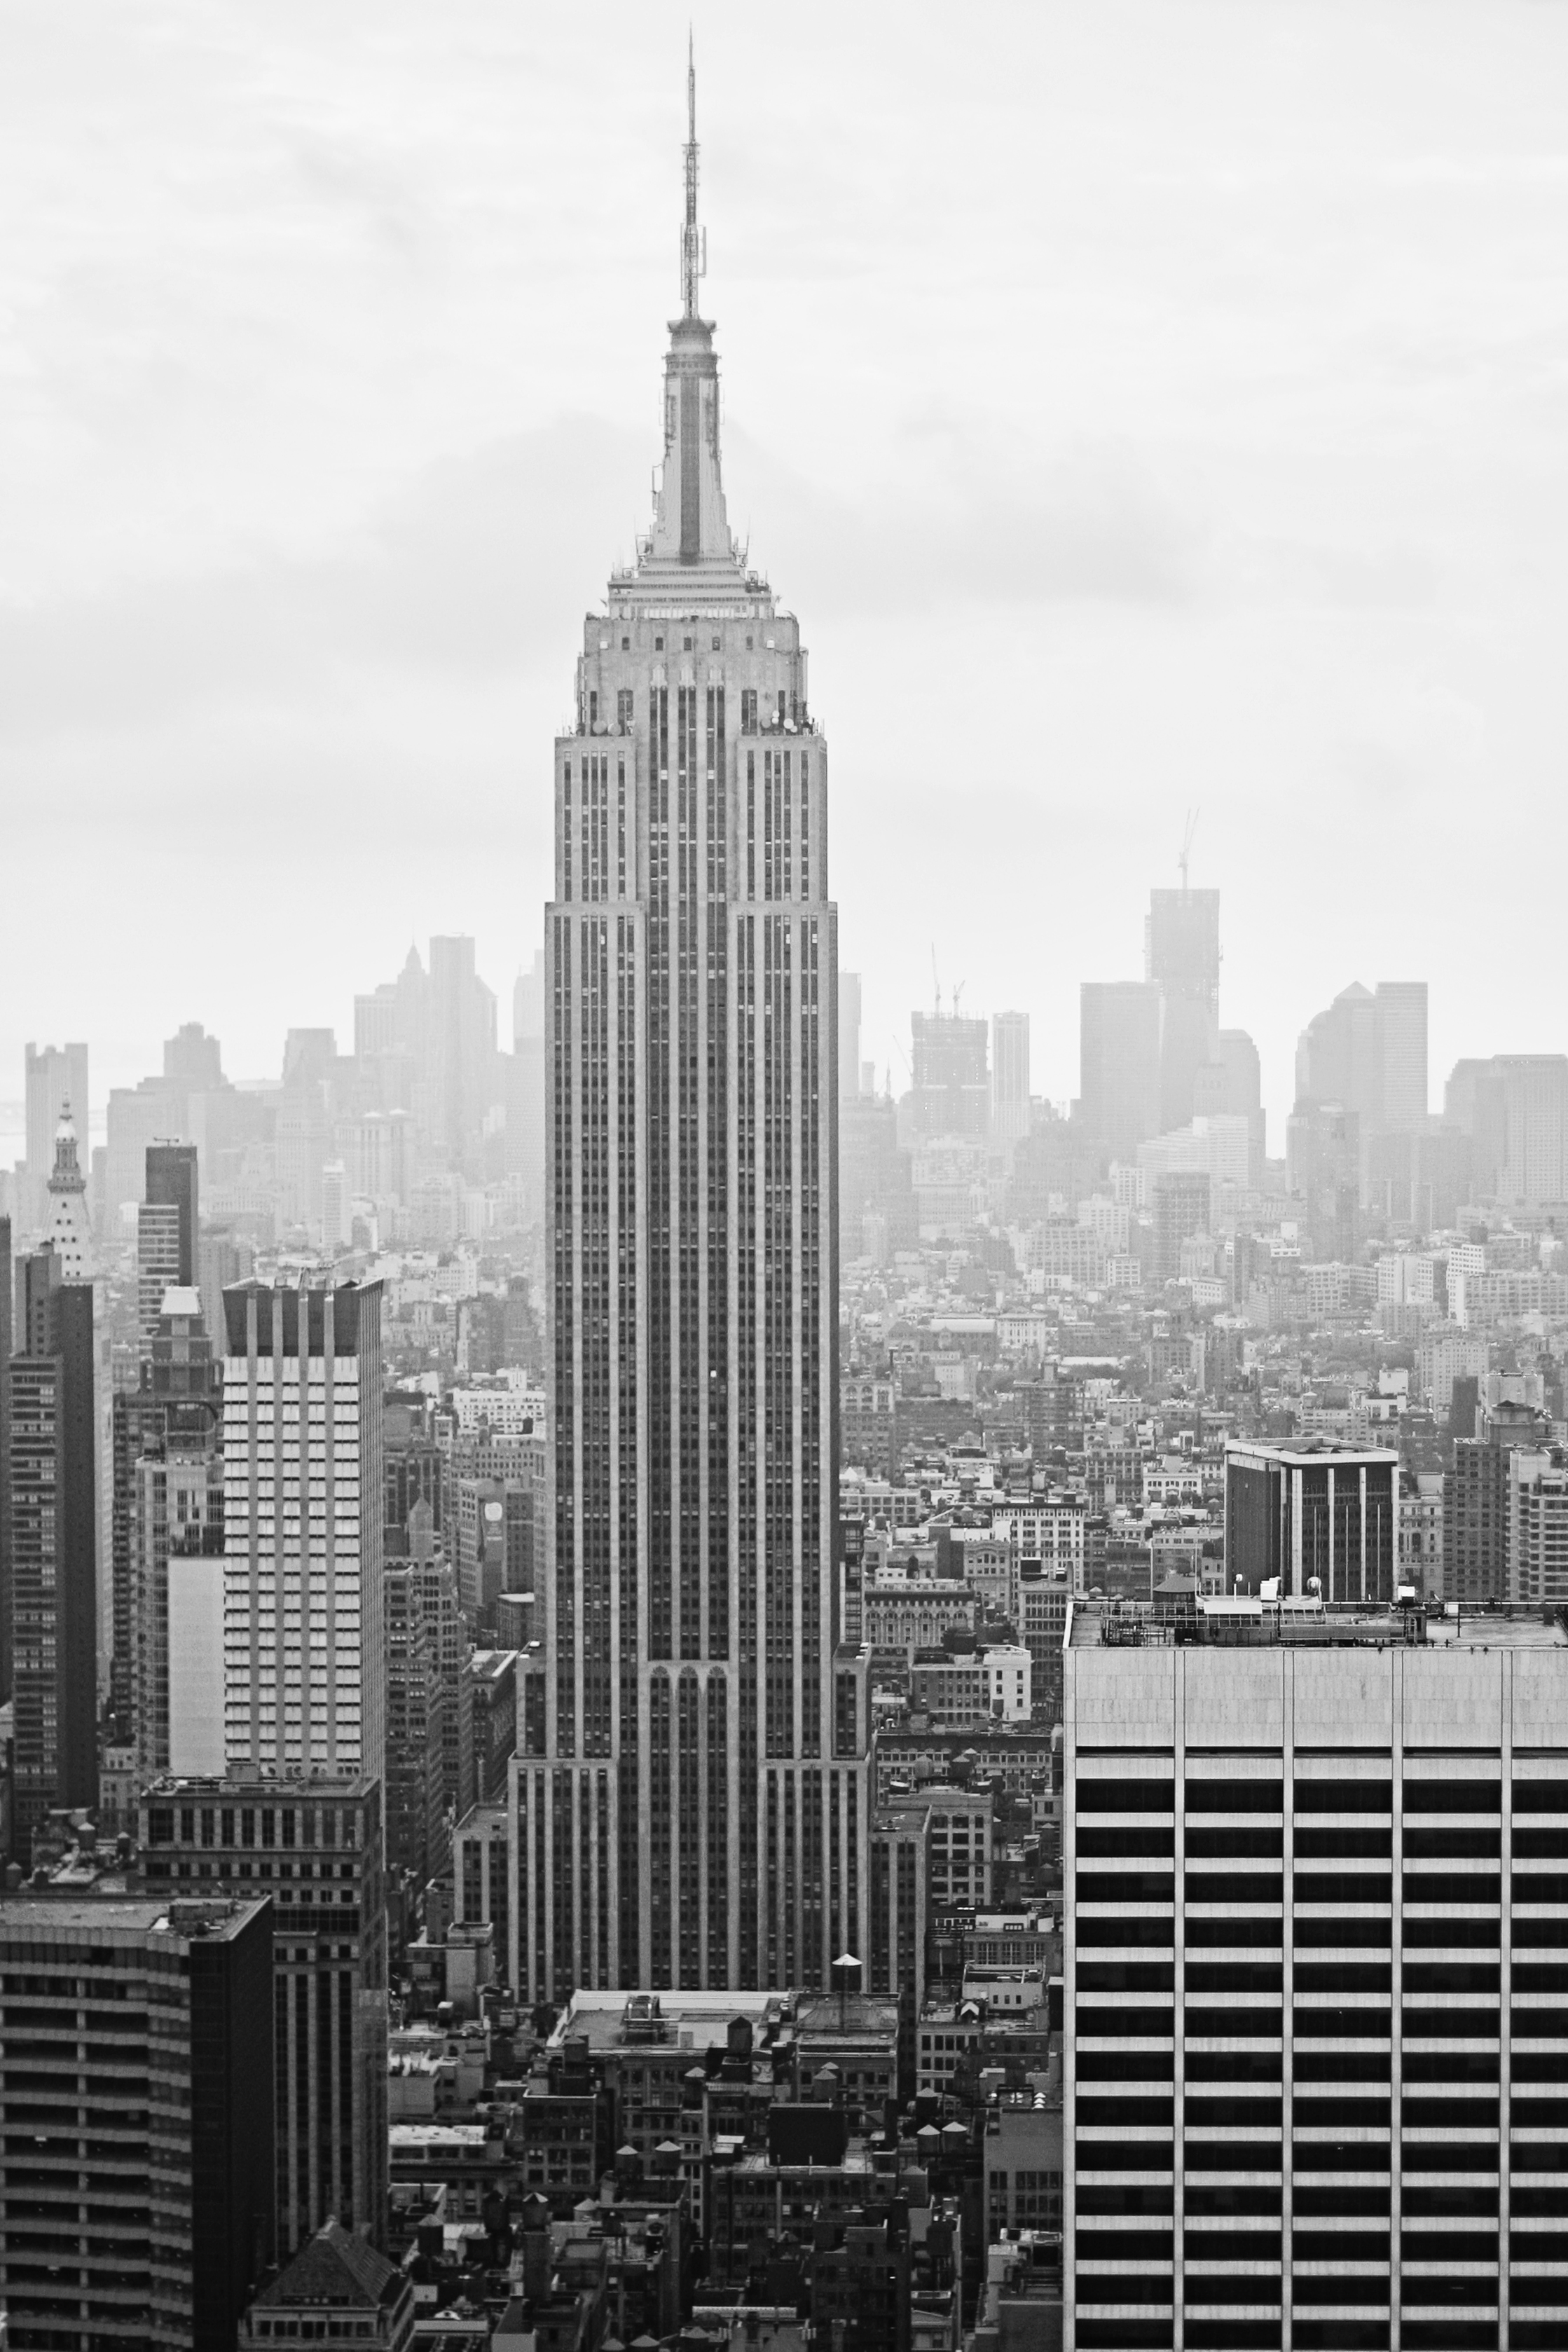 New York City: An Overview in Black and White | Cookie's ...